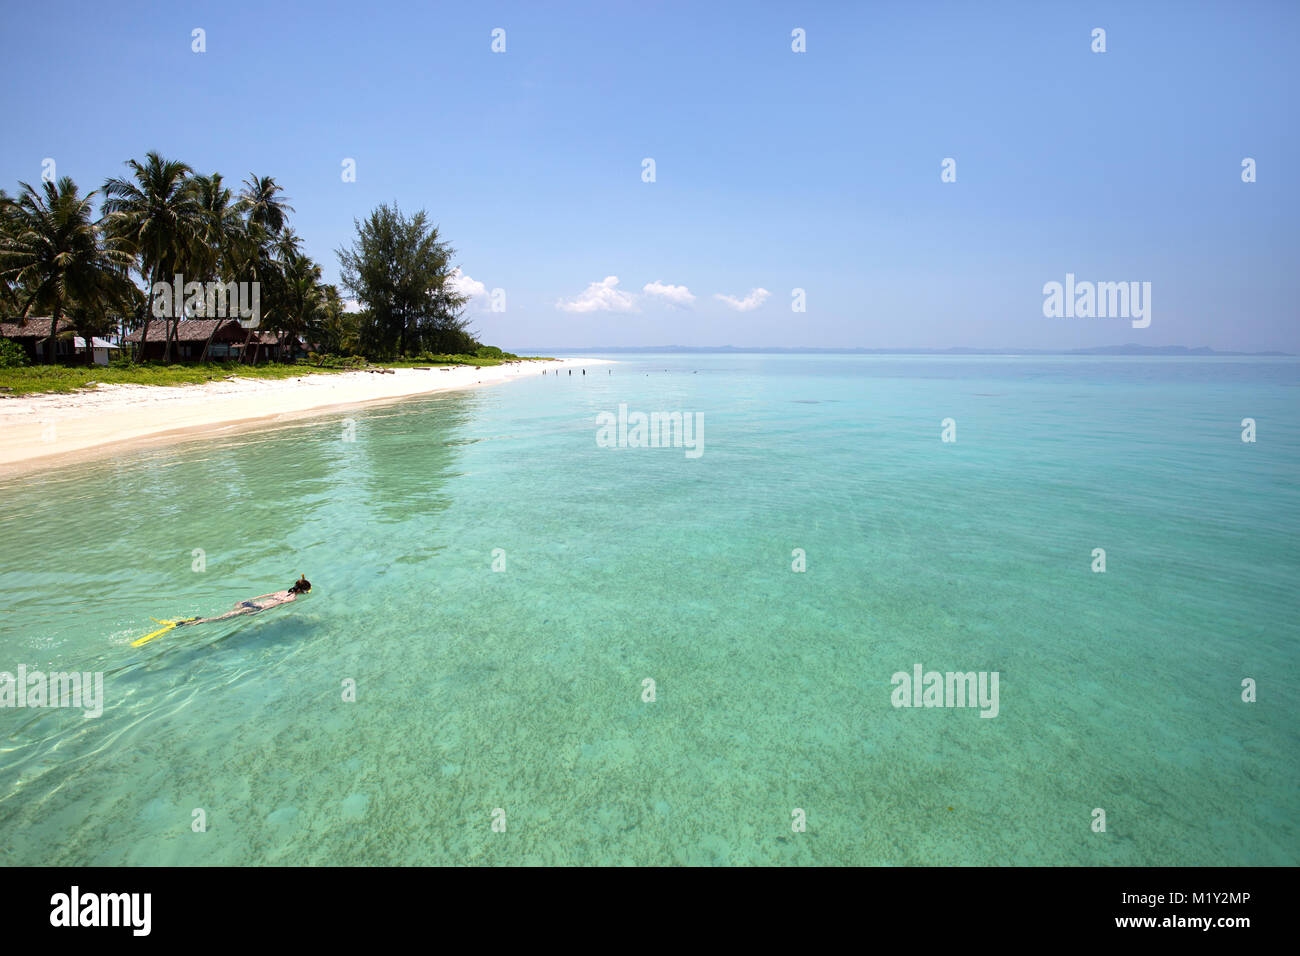 Woman snorkeling in turquoise blue sea - Stock Image